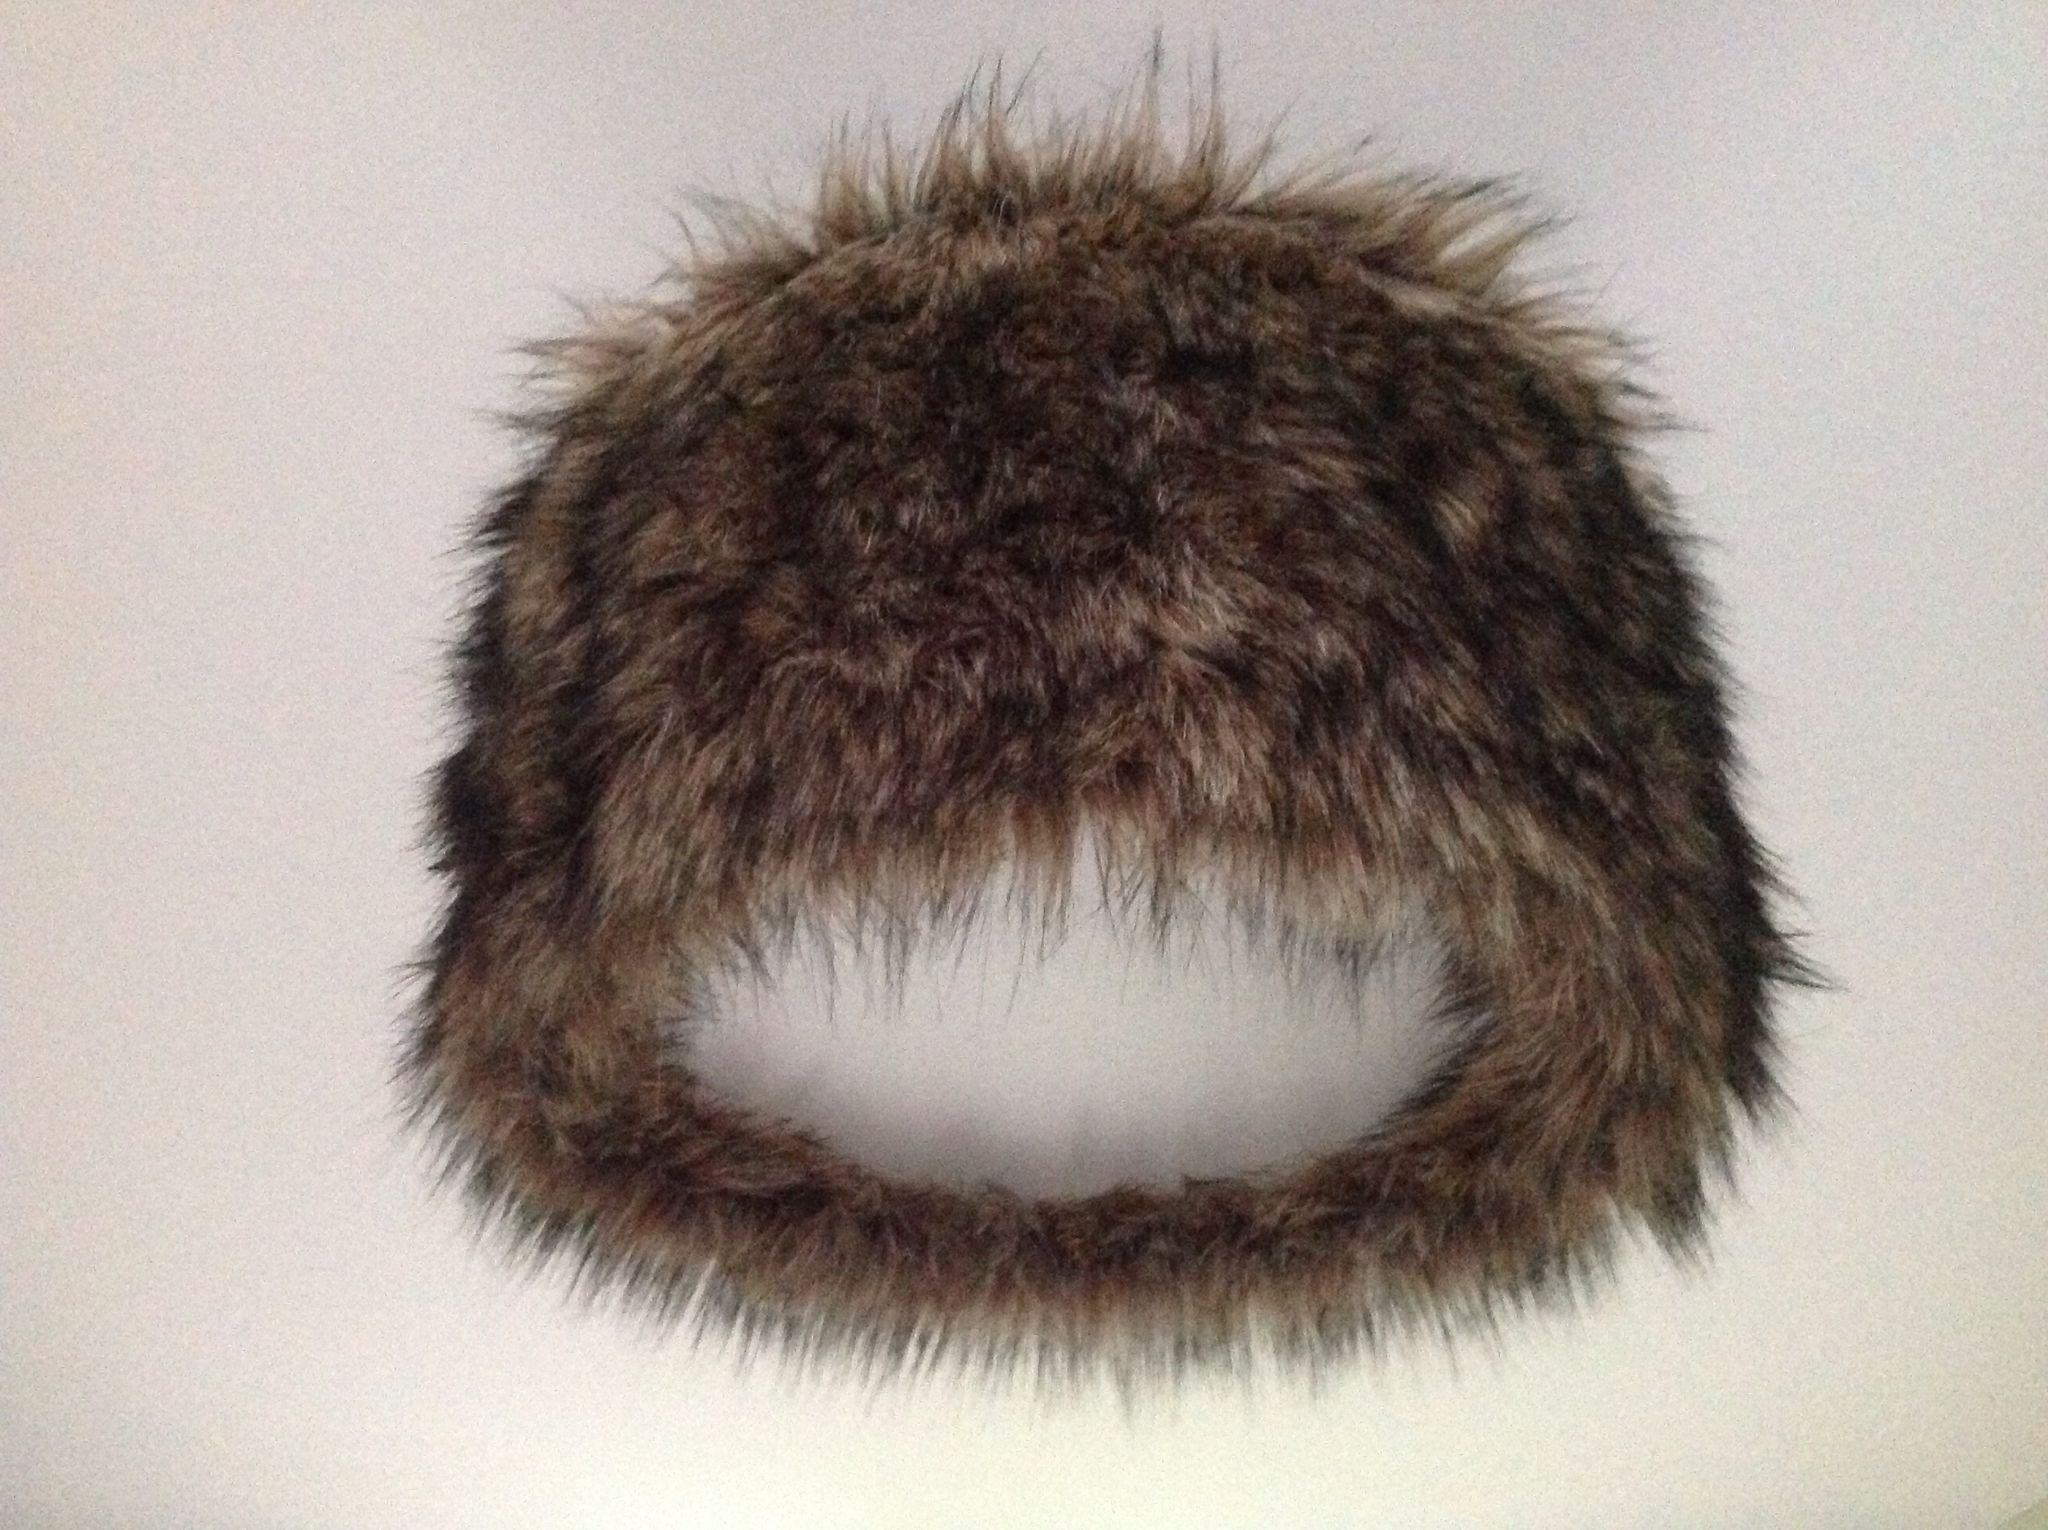 Shaggy faux fur lampshade get the wow factor fine dandys shaggy faux fur lampshade get the wow factor aloadofball Choice Image